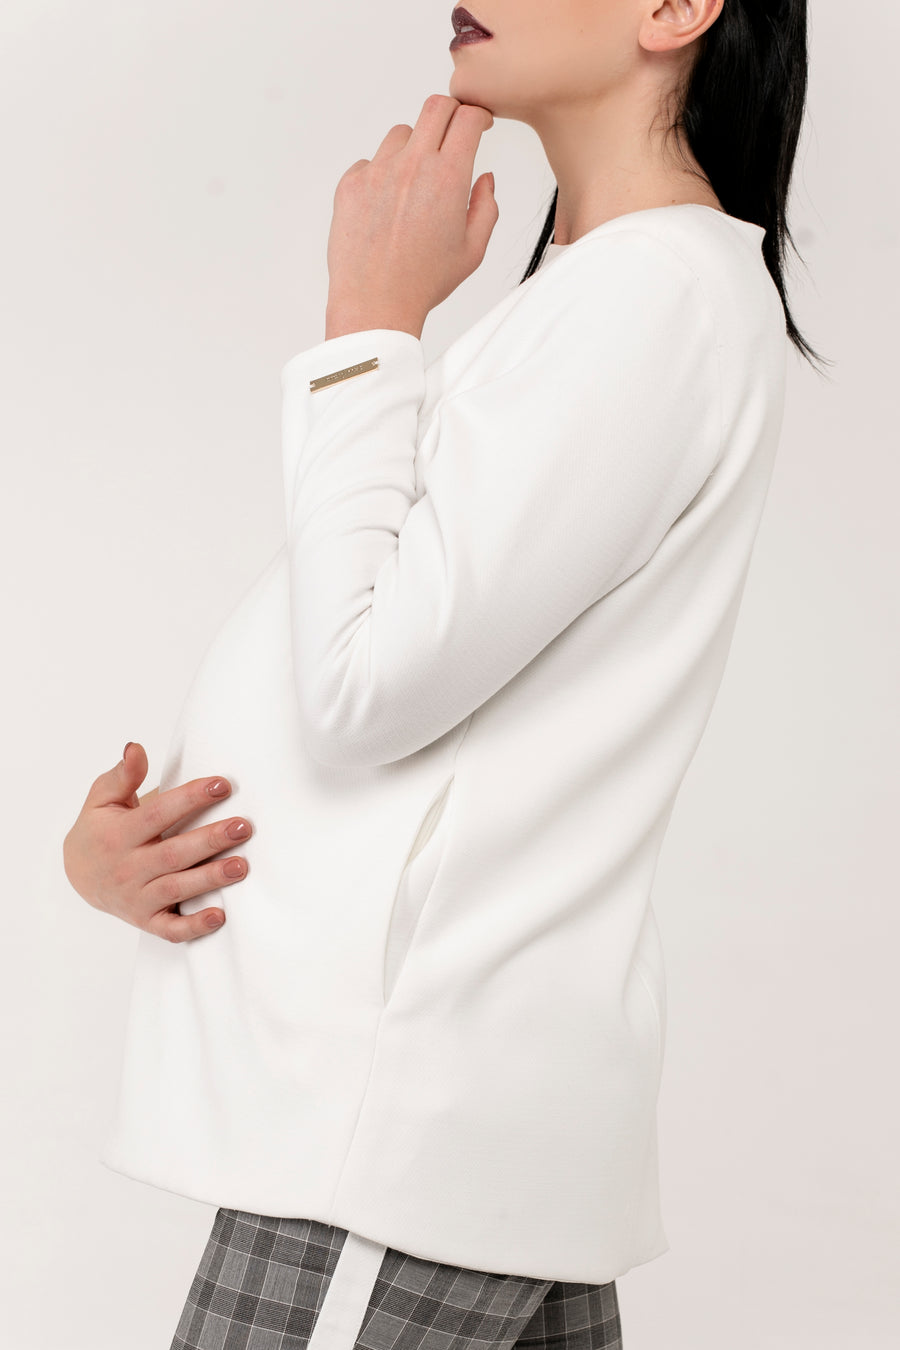 Asymmetric Nursing Jacket - JLMaternity